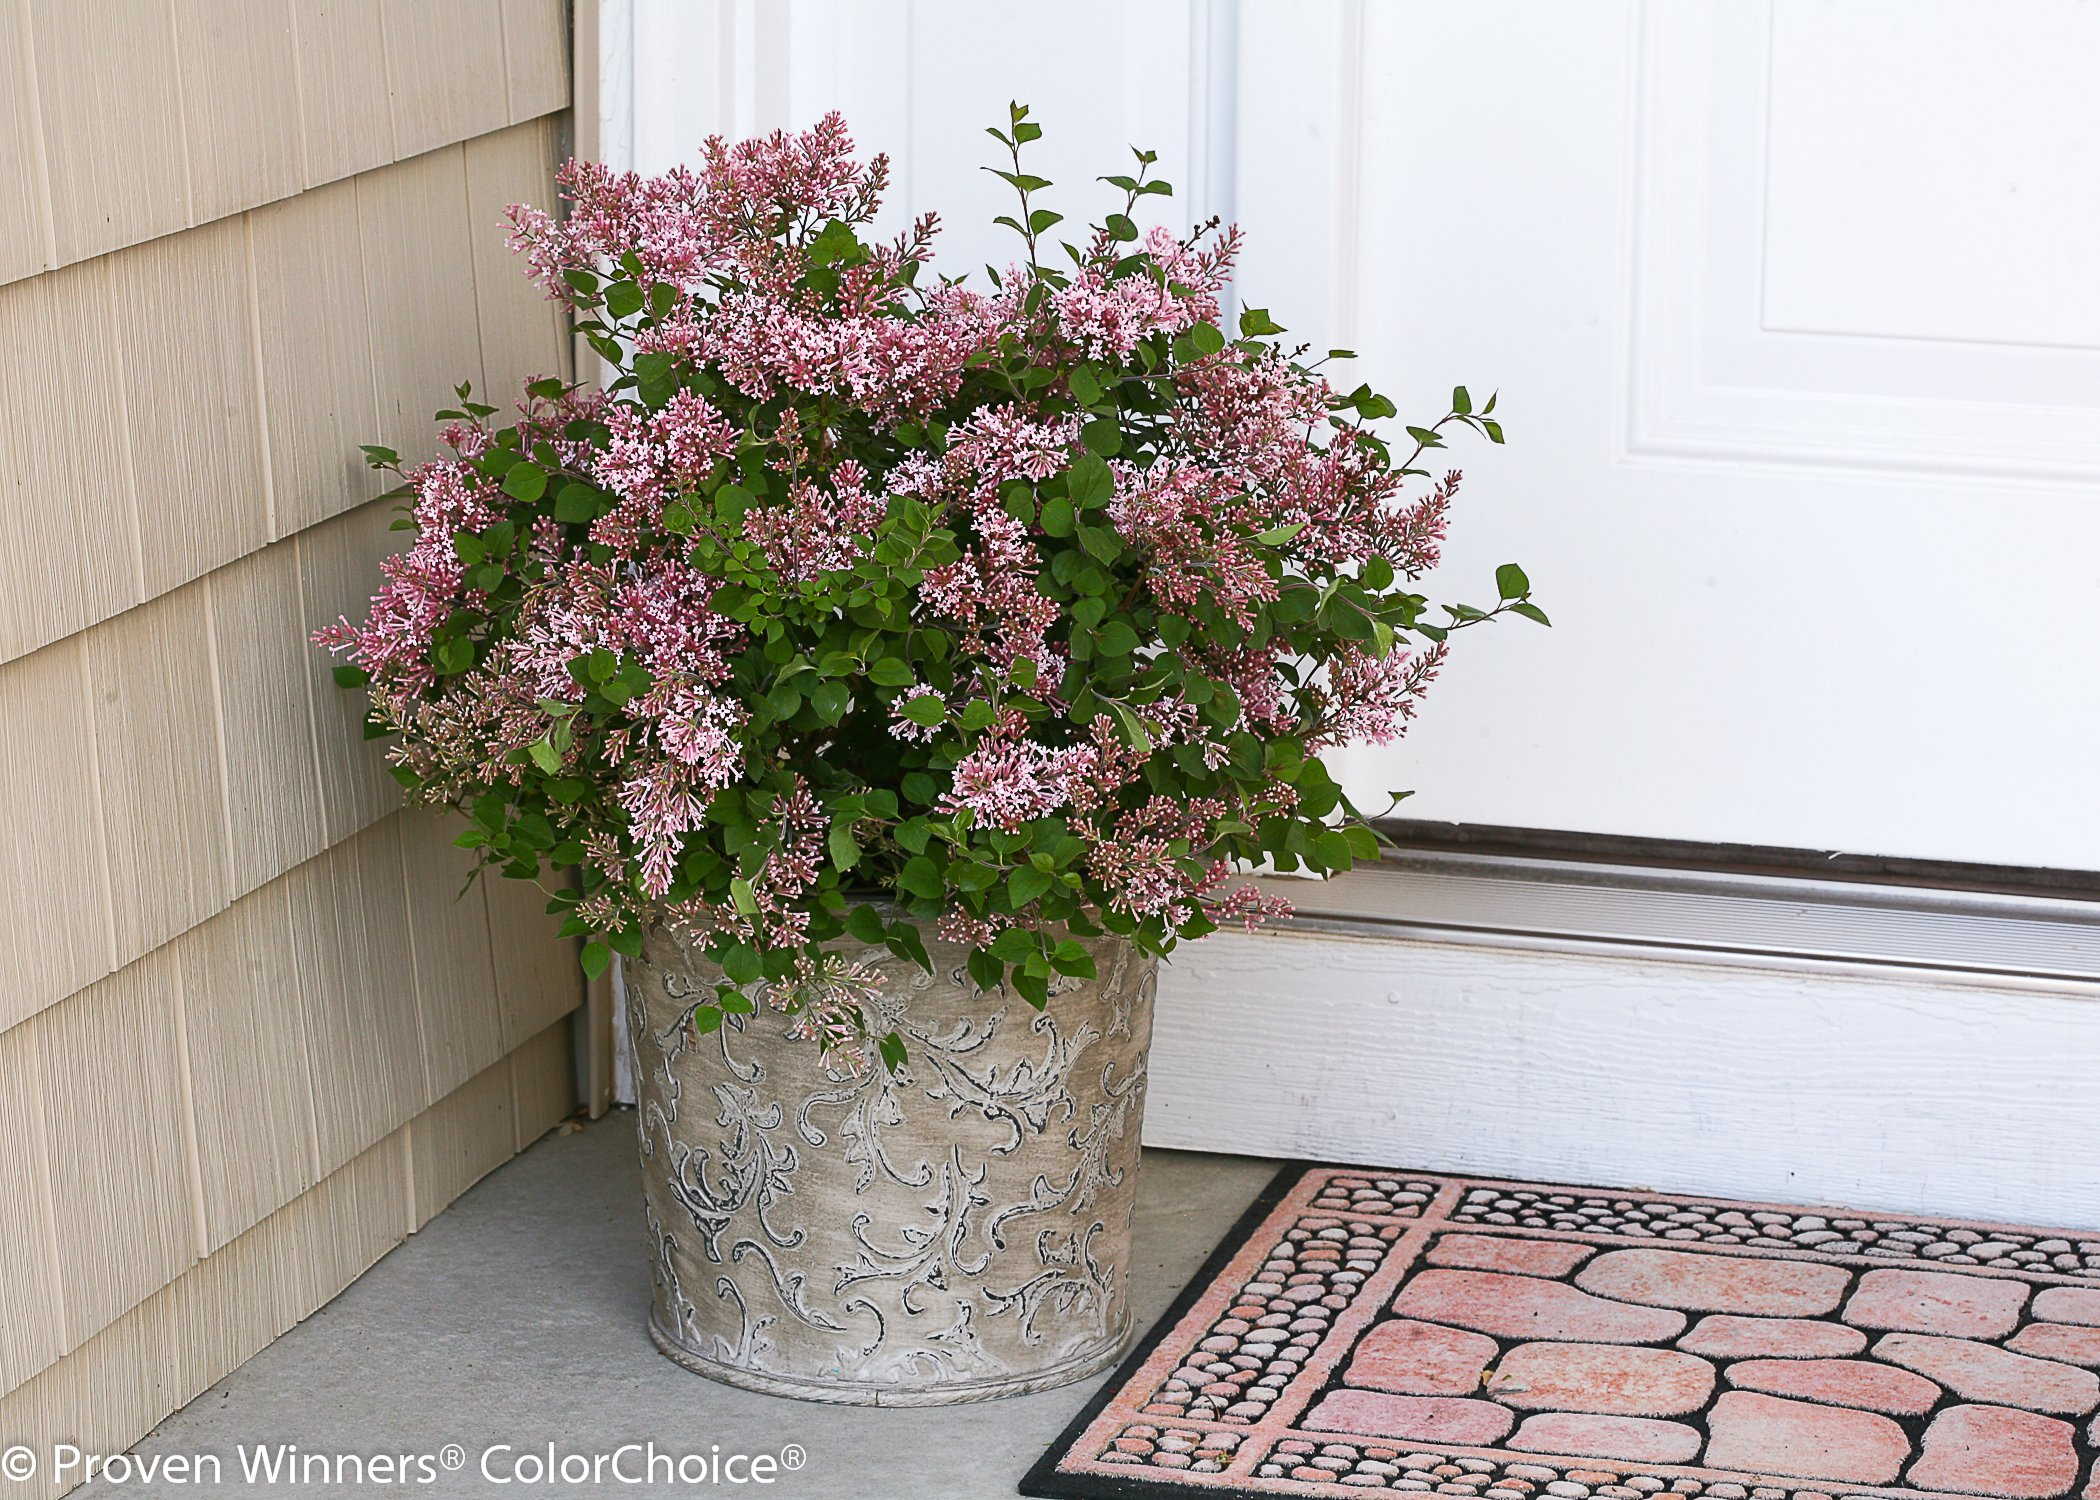 Proven Winners - Syringa x Bloomerang 'Pink Perfume' (Reblooming Lilac) Shrub, pink flowers, #2 - Size Container by Green Promise Farms (Image #1)